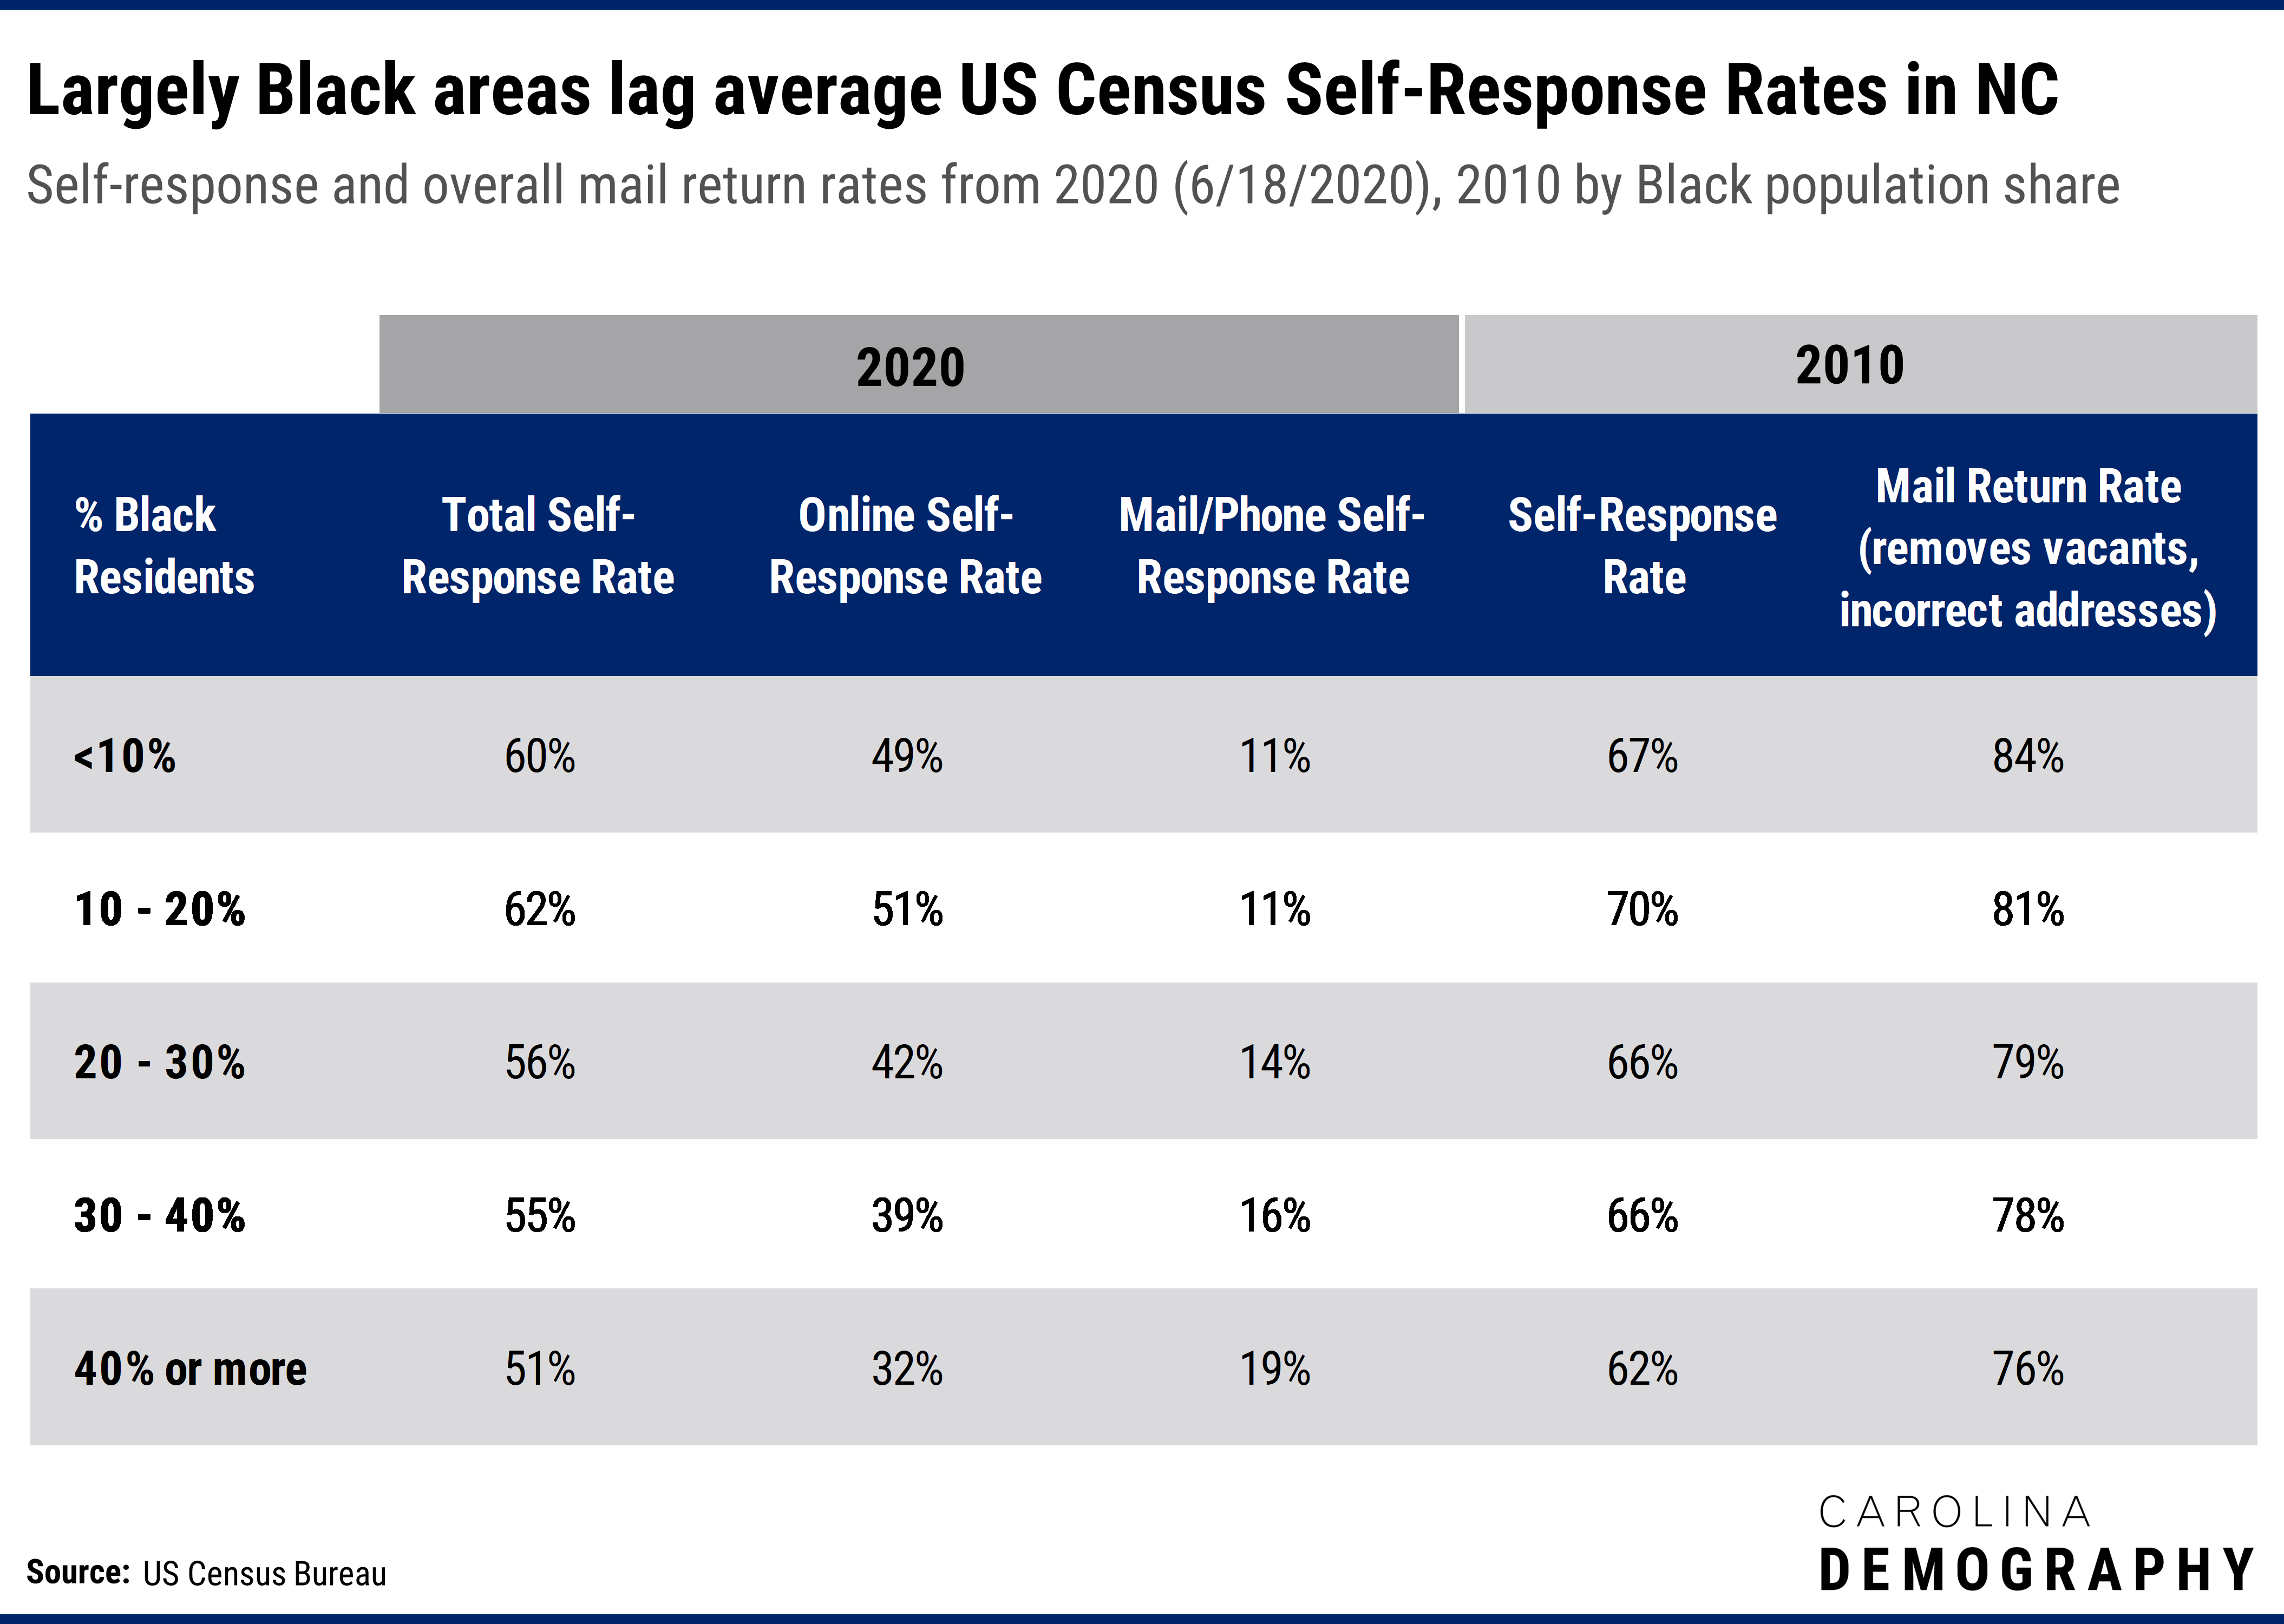 Largely Black areas lag average US Census Self-Response Rates in NC. Self-response and overall mail return rates from 2020 (6/18/2020), versus 2010 rates by Black population share.